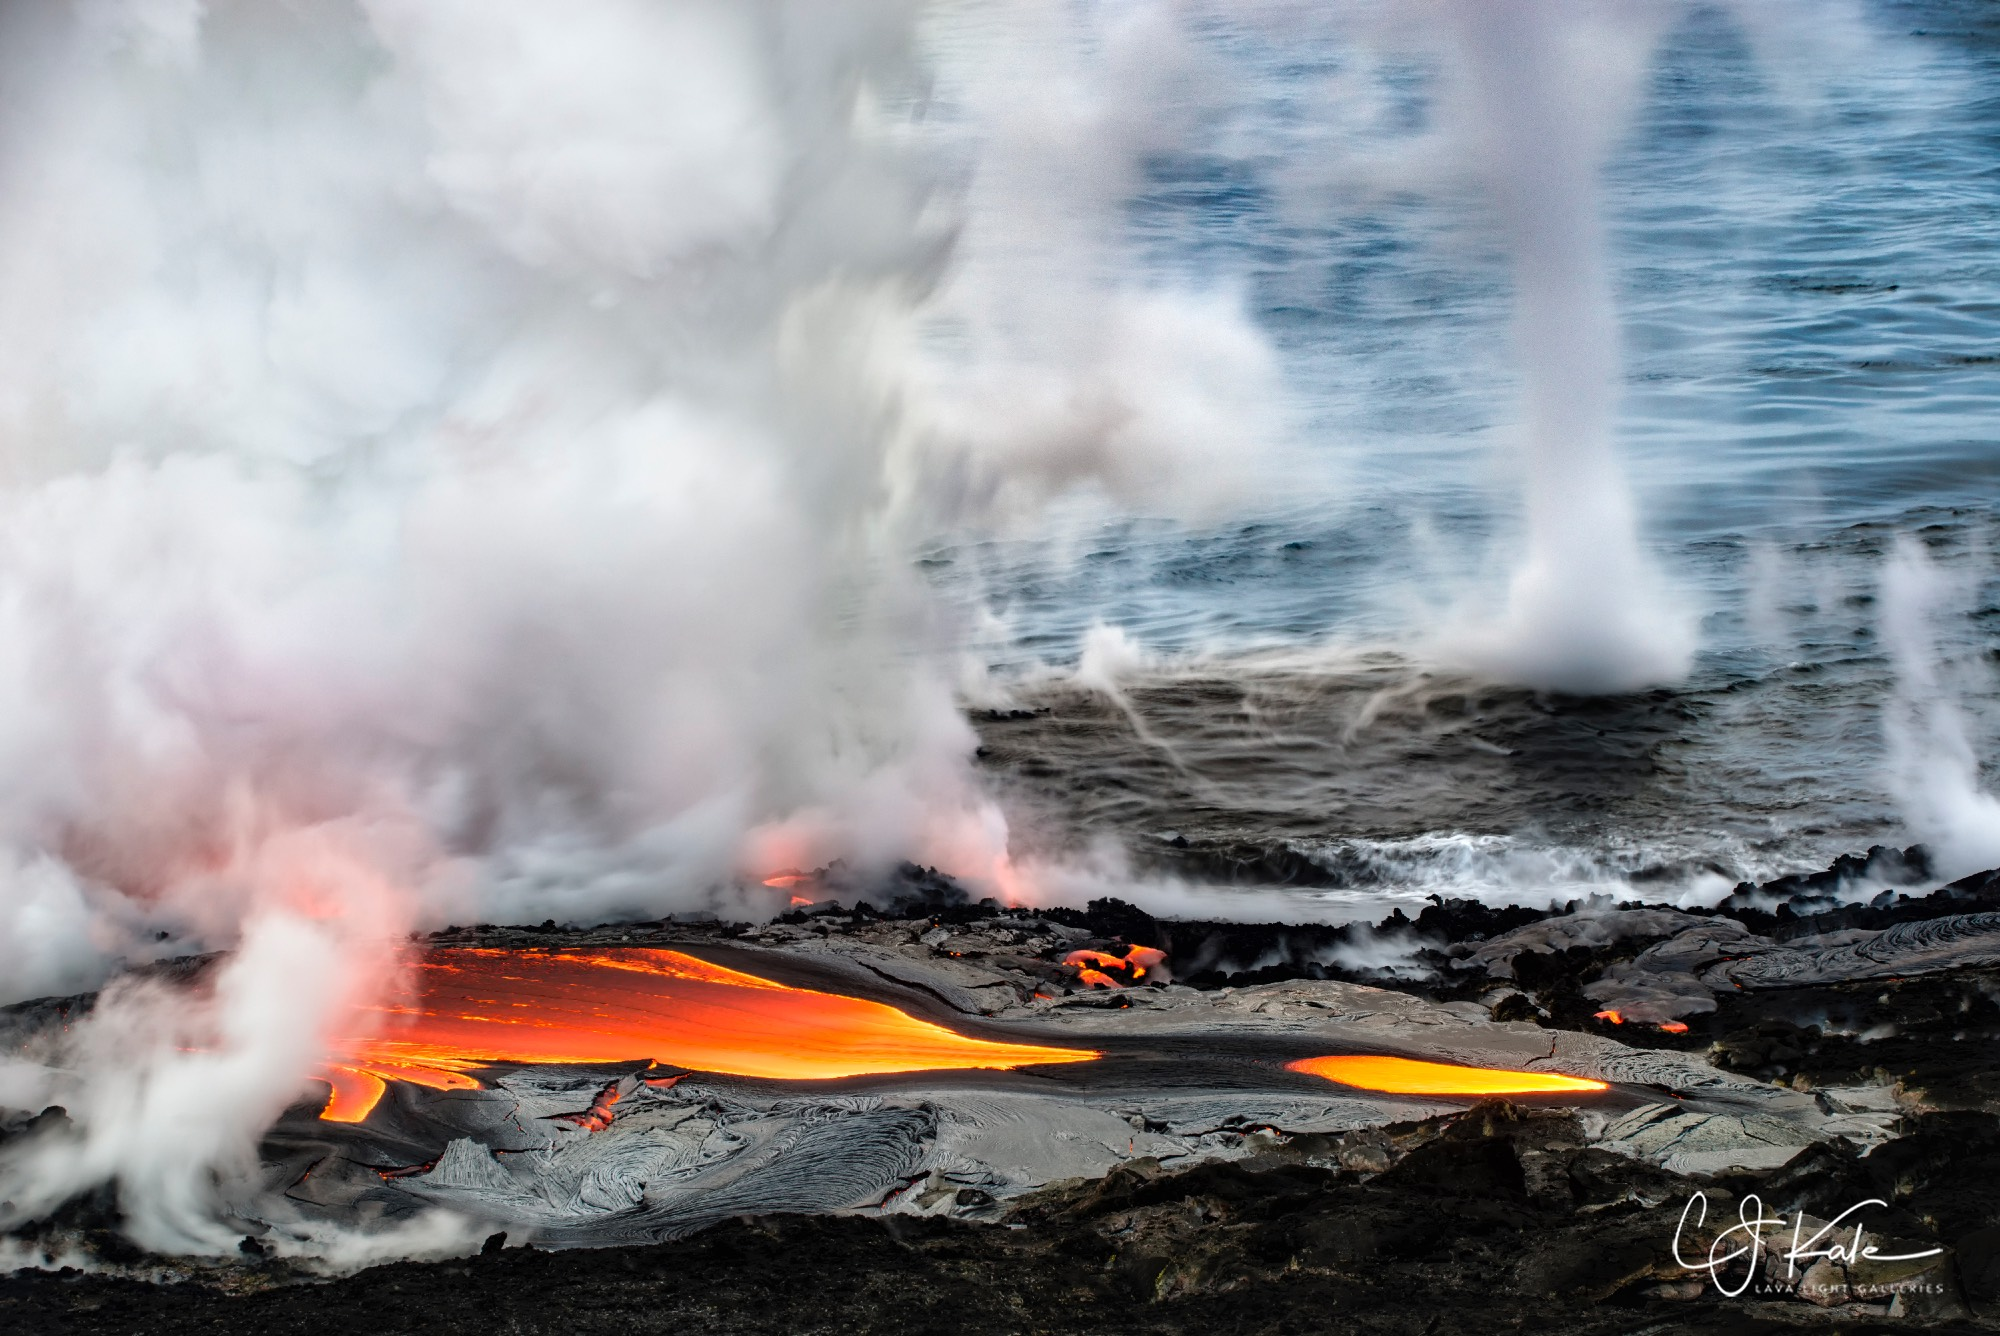 The hot lava hitting the much cooler ocean often causes little tornado like vortices.